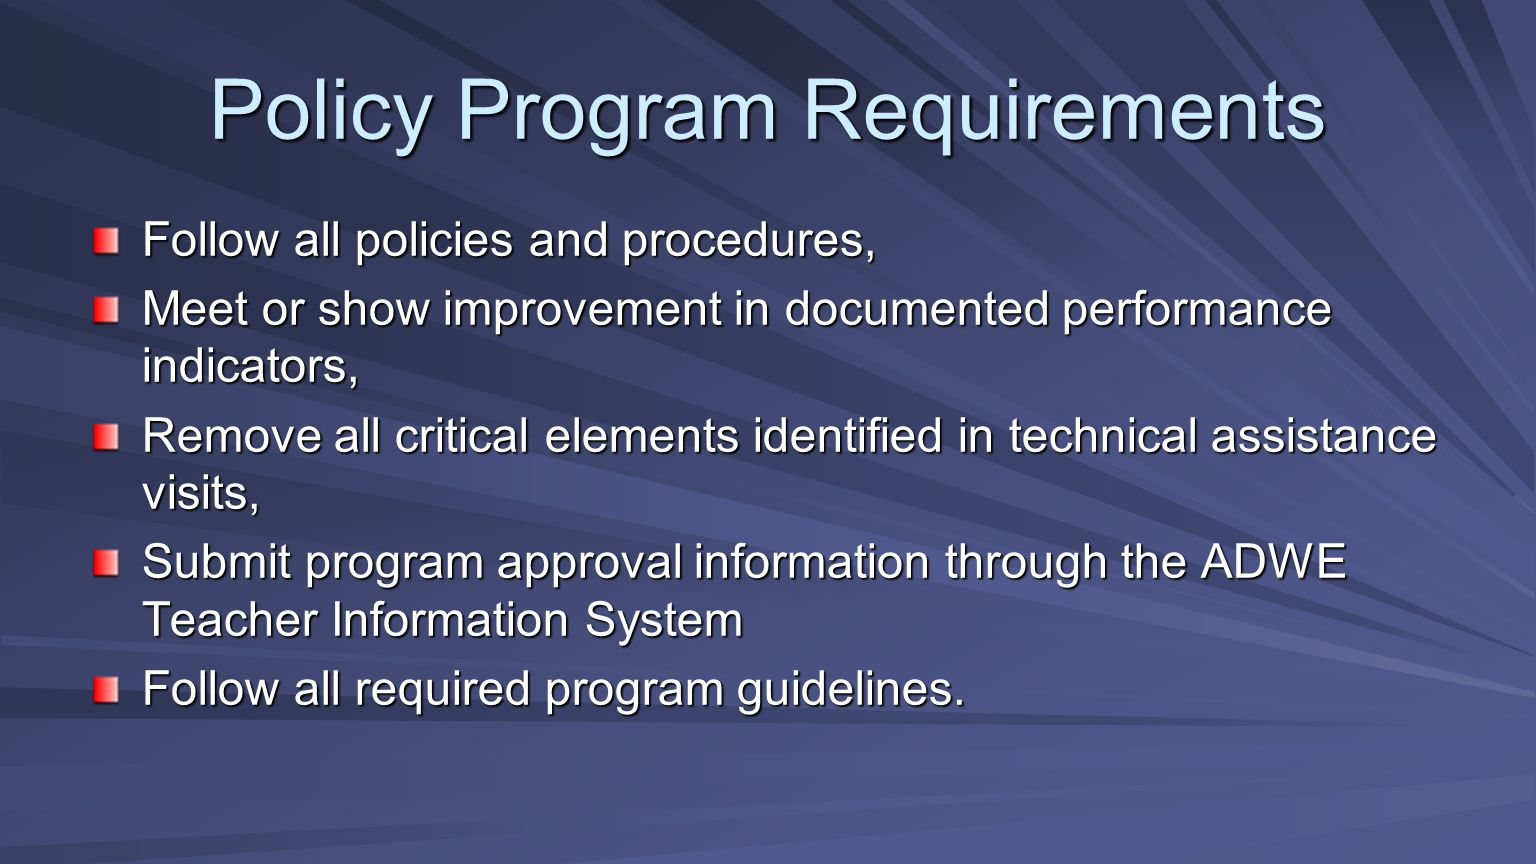 Policy Program Requirements